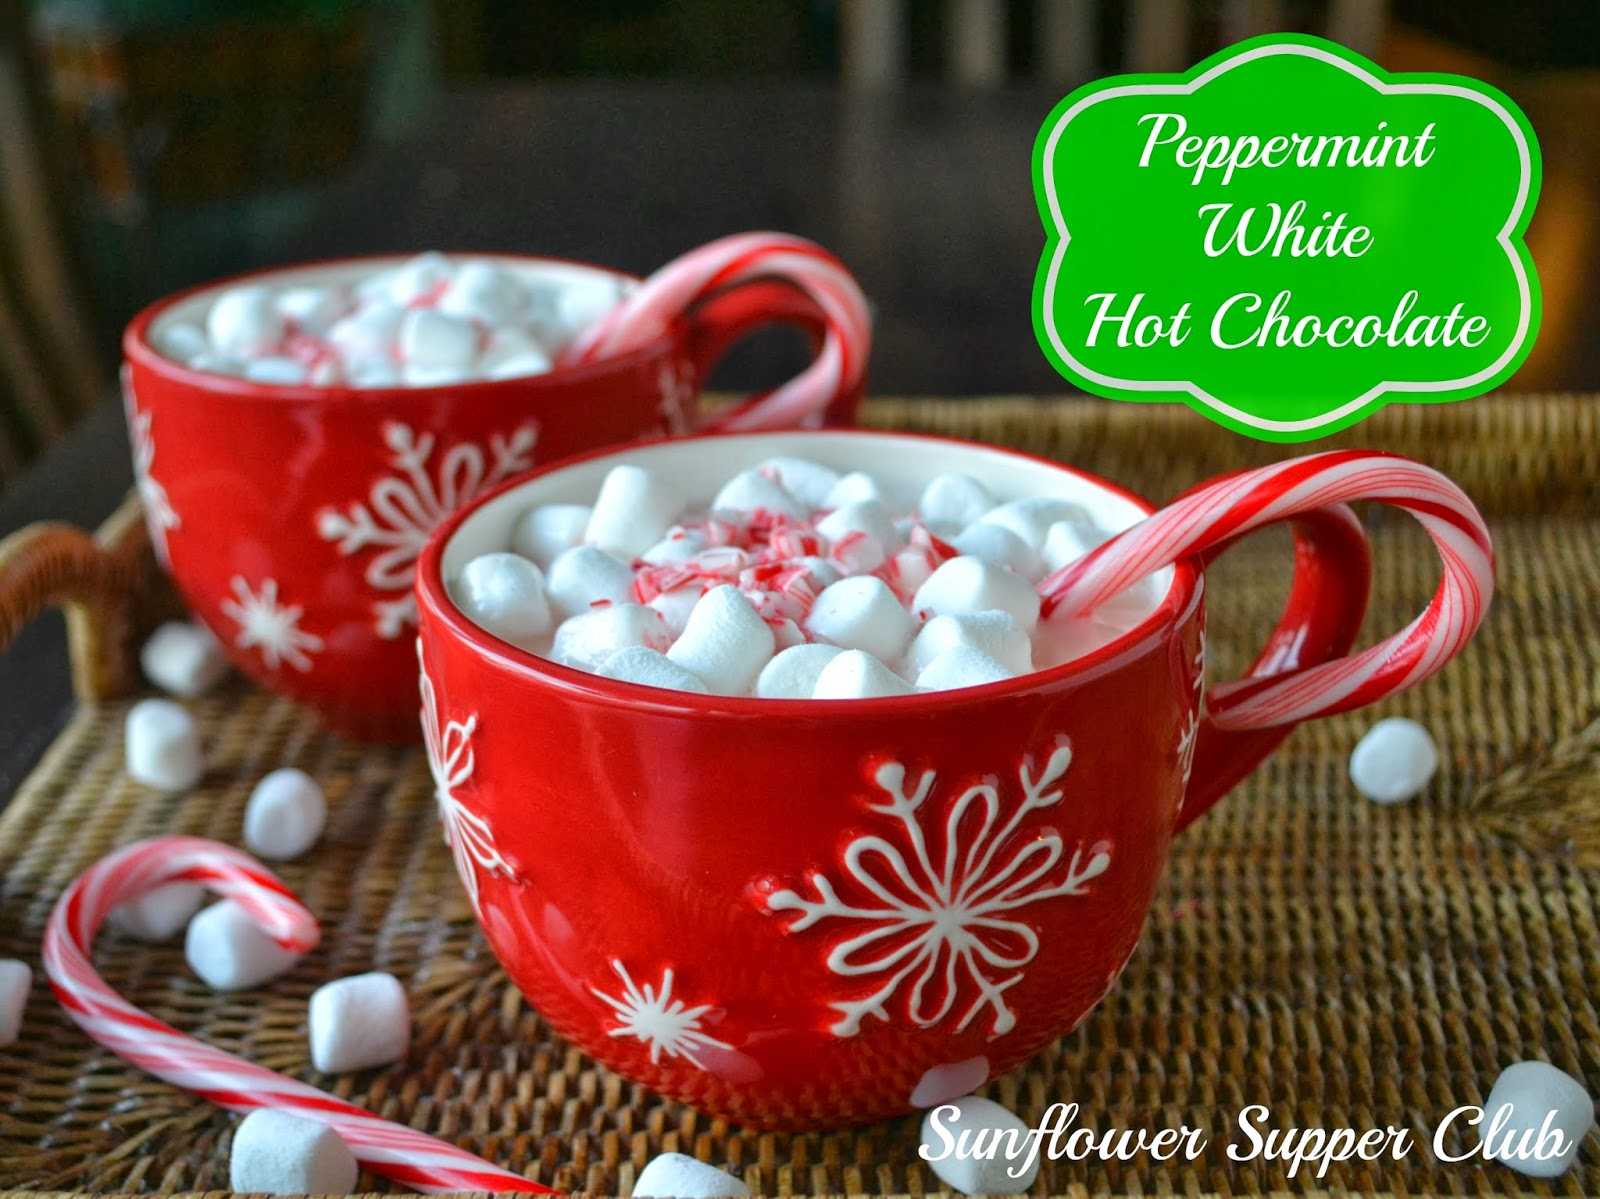 Sunflower Supper Club: Peppermint White Hot Chocolate